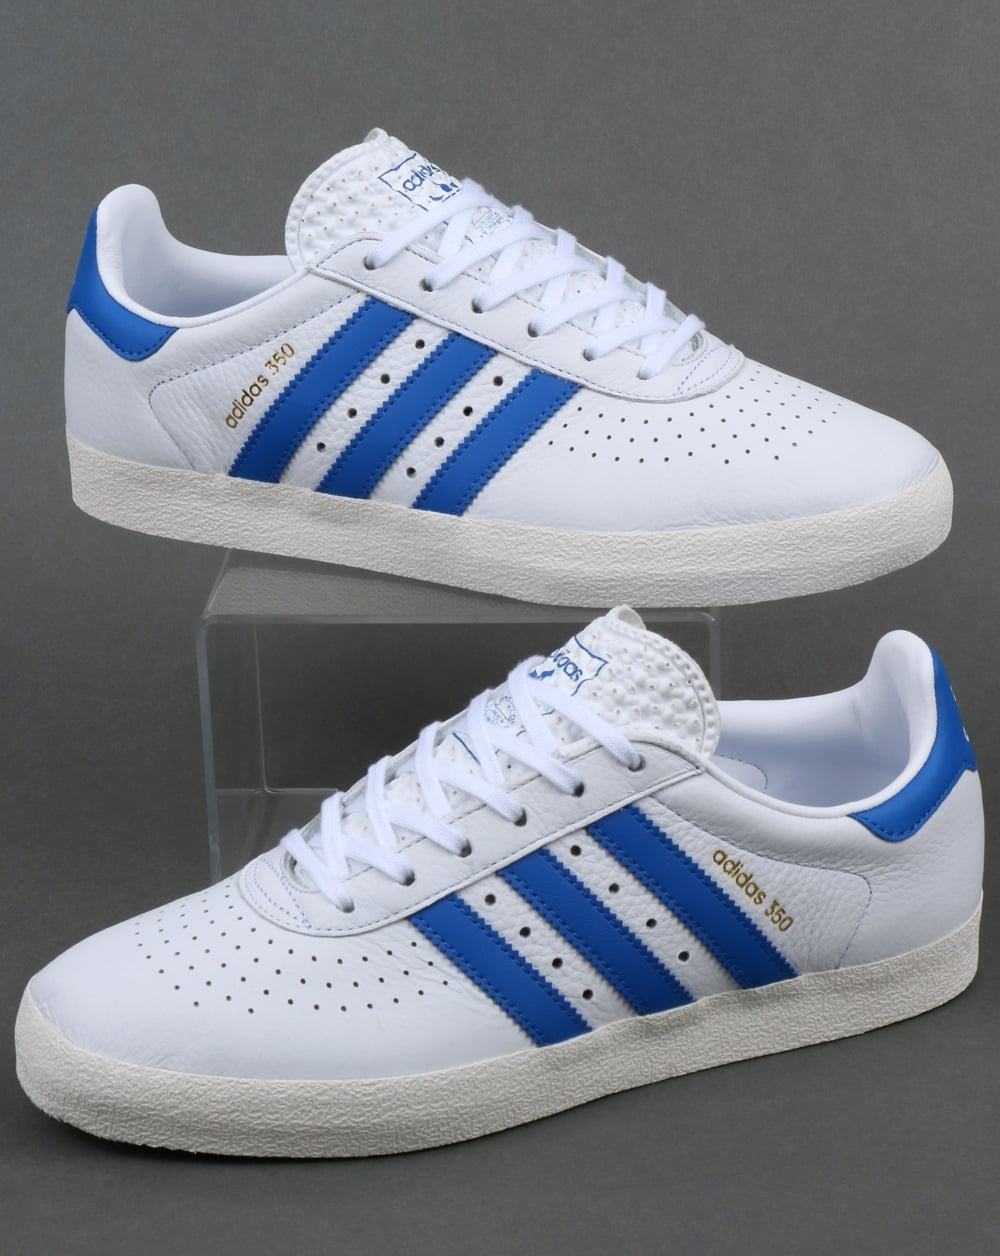 Adidas Trainers Blue : Adidas Shoes